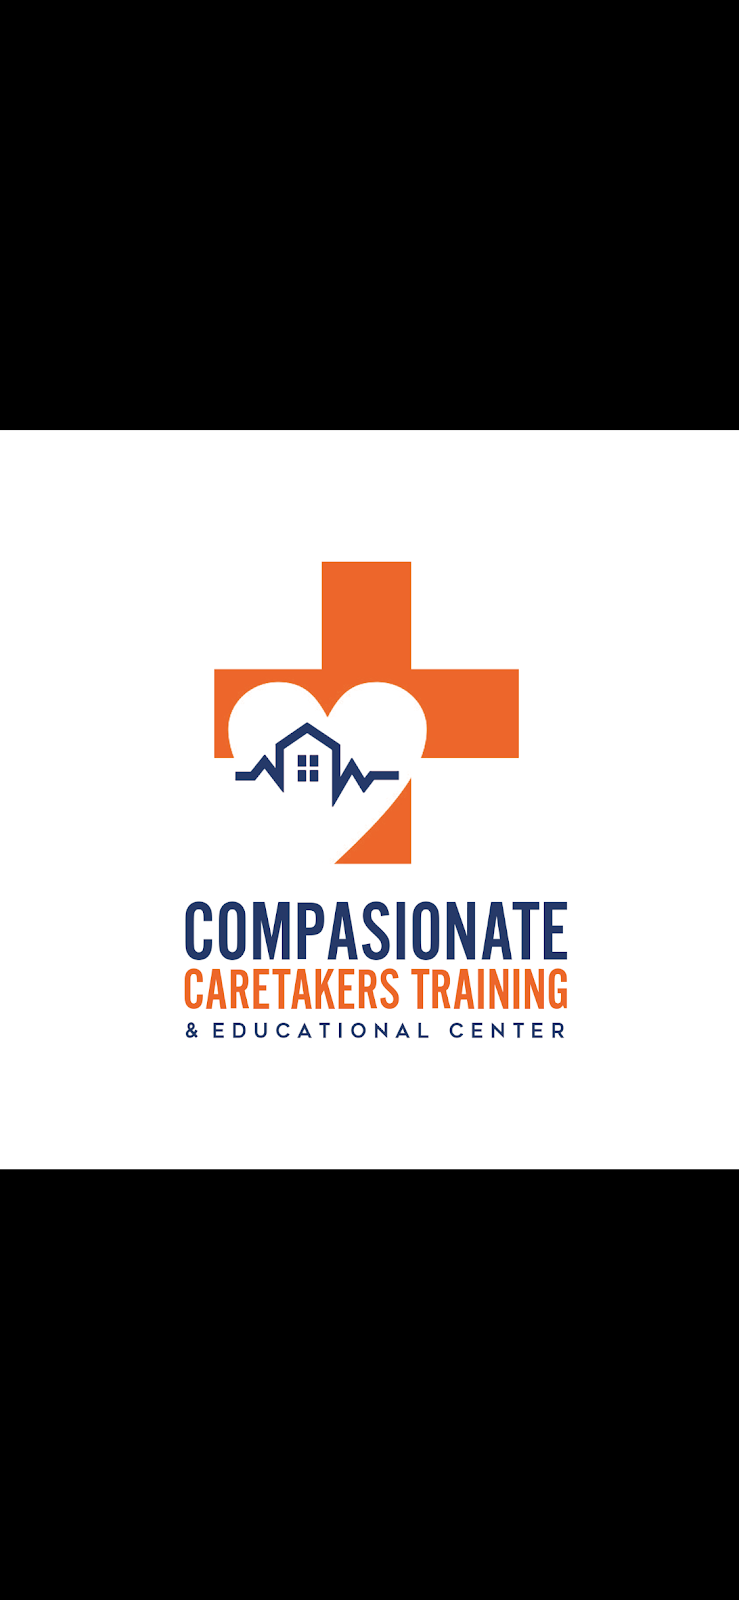 Compassionate Caretakers Training & Education Center - university  | Photo 3 of 3 | Address: 1523, 1826 Ridge Ave, Philadelphia, PA 19130, USA | Phone: (215) 232-3234